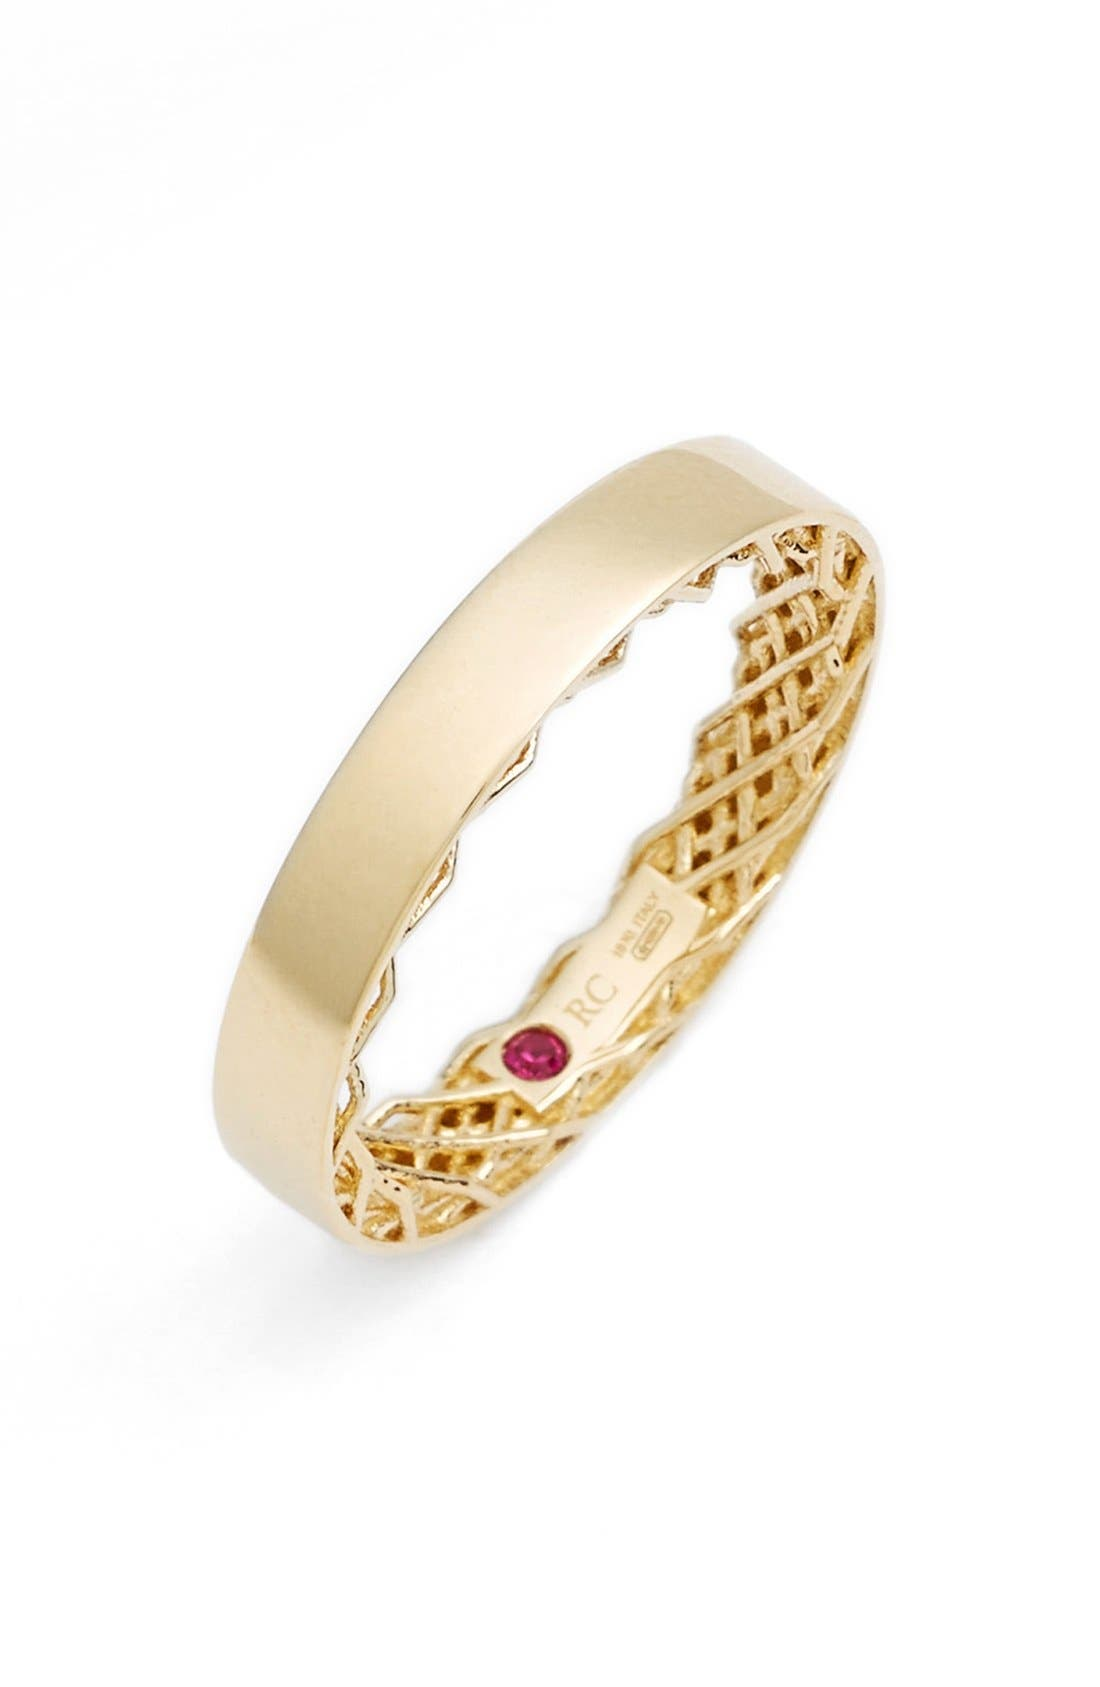 Roberto Coin 'Symphony - Golden Gate' Band Ring